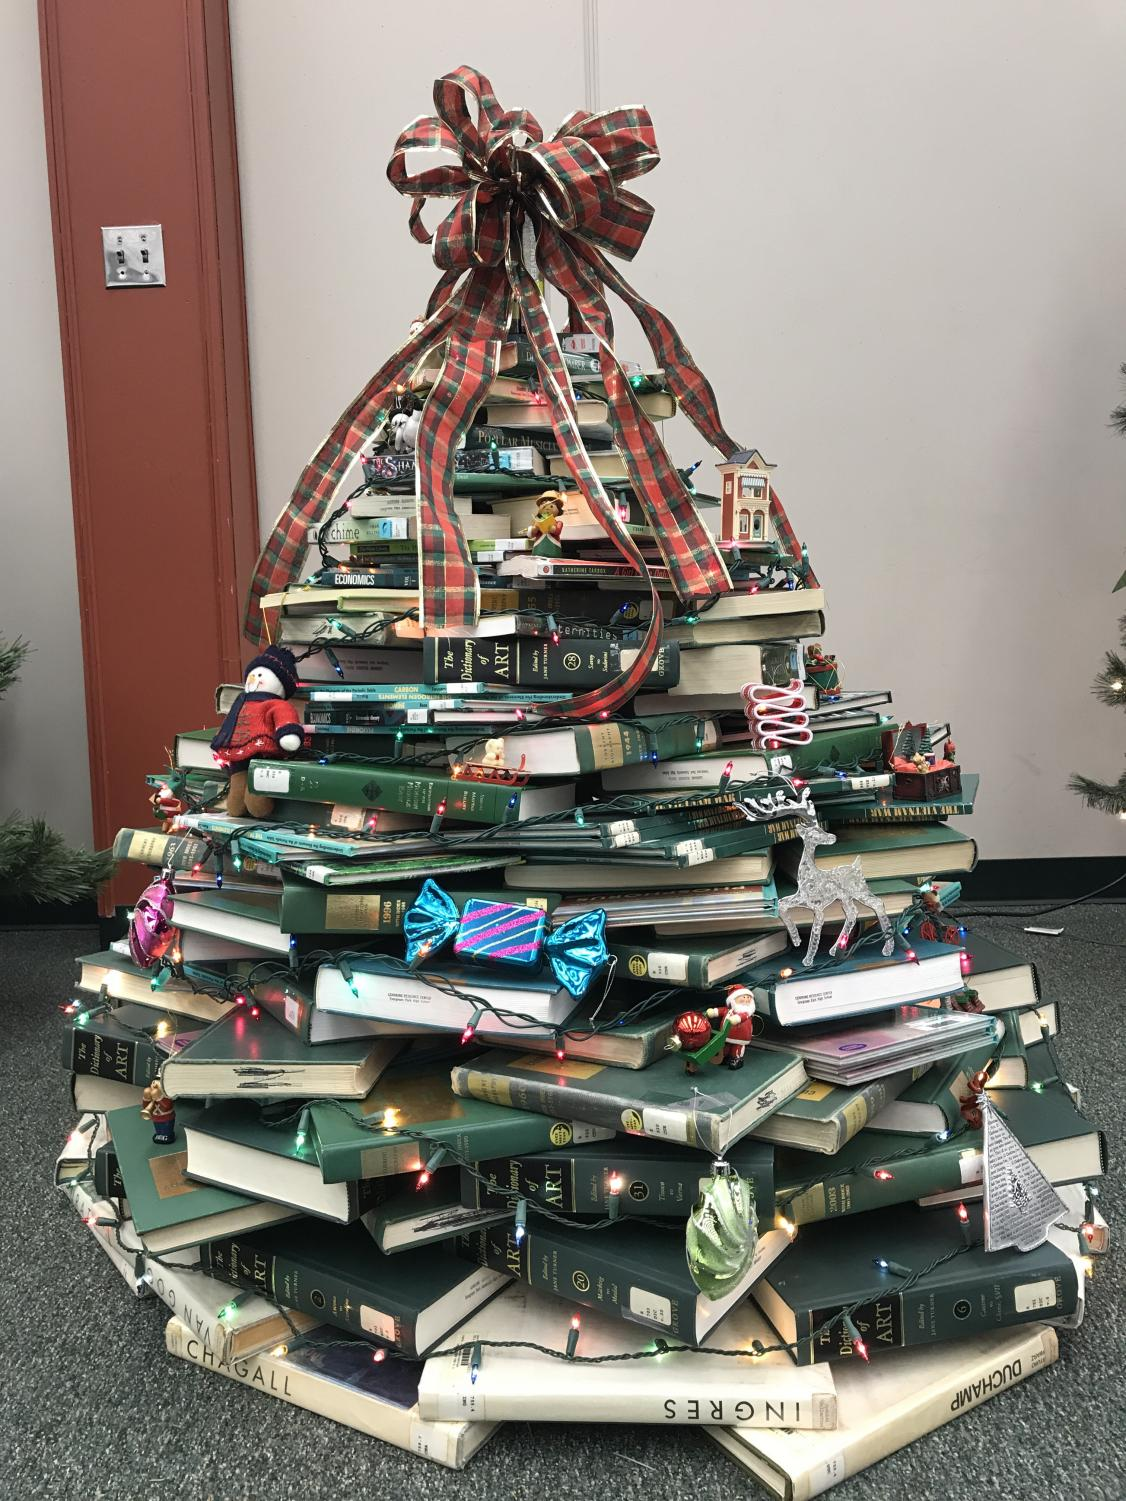 The LRC Christmas Tree for the Staff's Battle of the Trees.